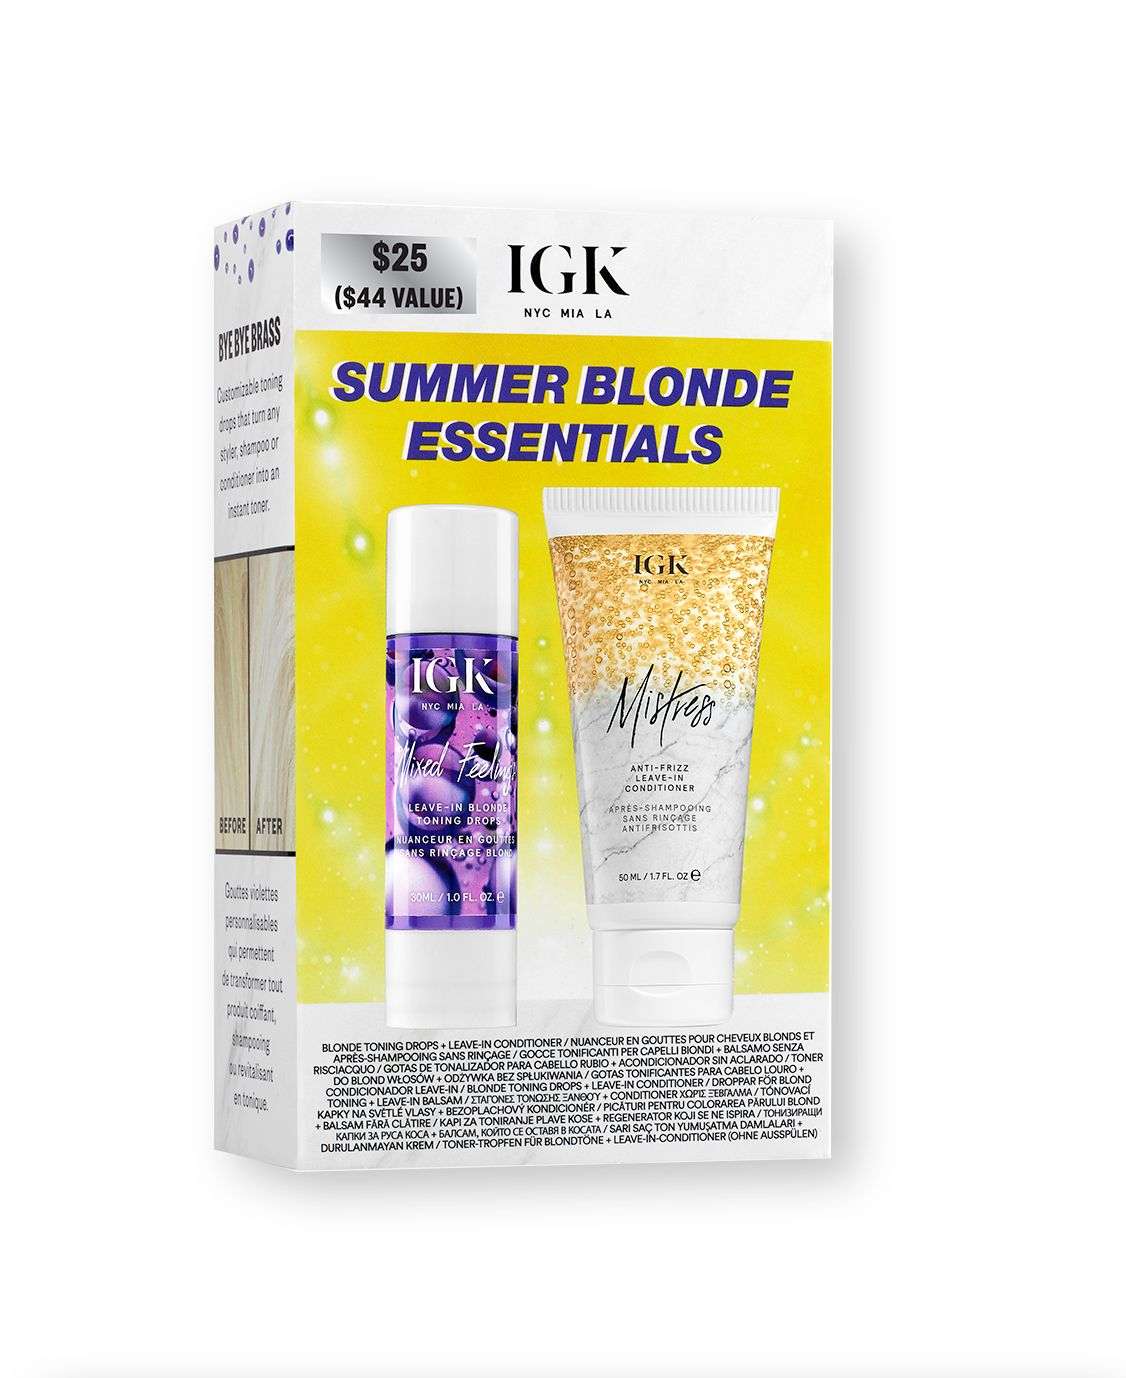 Summer Blonde Essentials